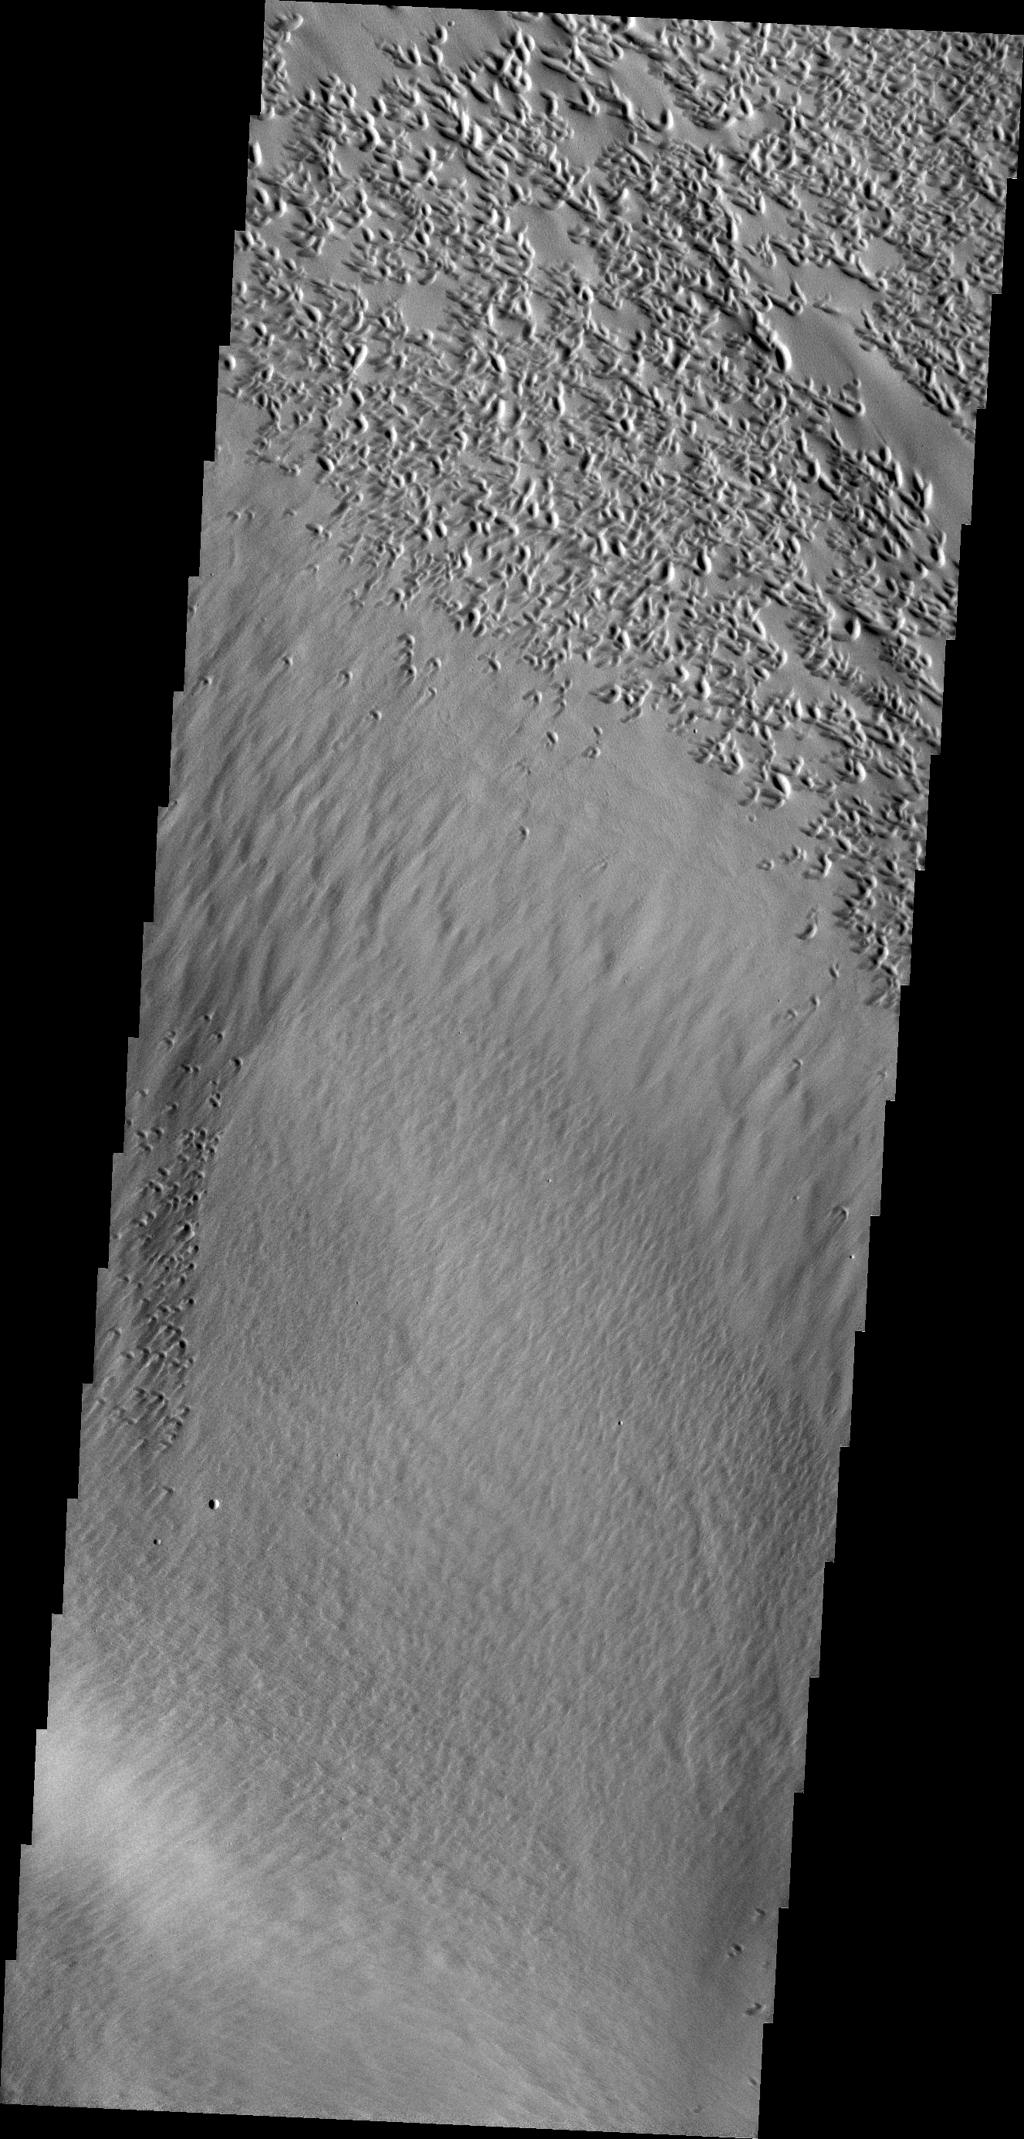 The pits at the top of this image are created by the action of the wind in this image captured by NASA's Mars Odyssey.